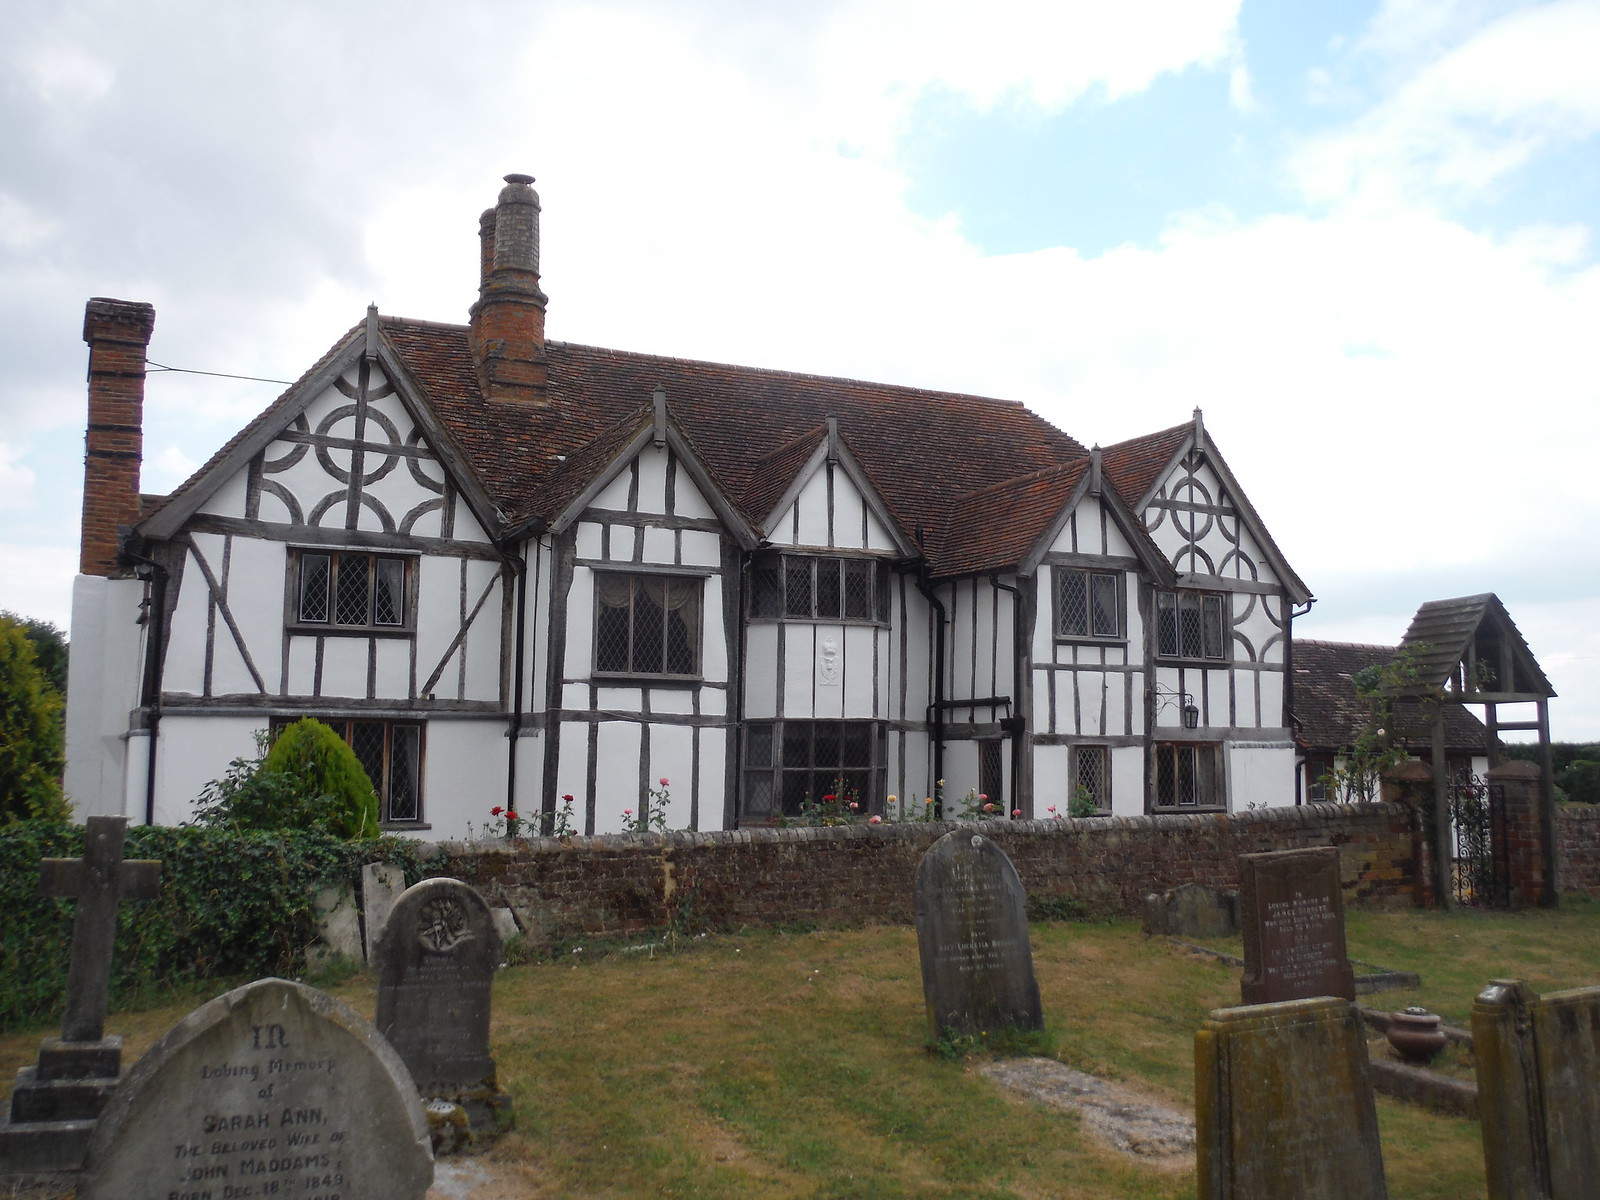 Meppershall Manor House SWC Walk 233 - Arlesey to Letchworth Garden City